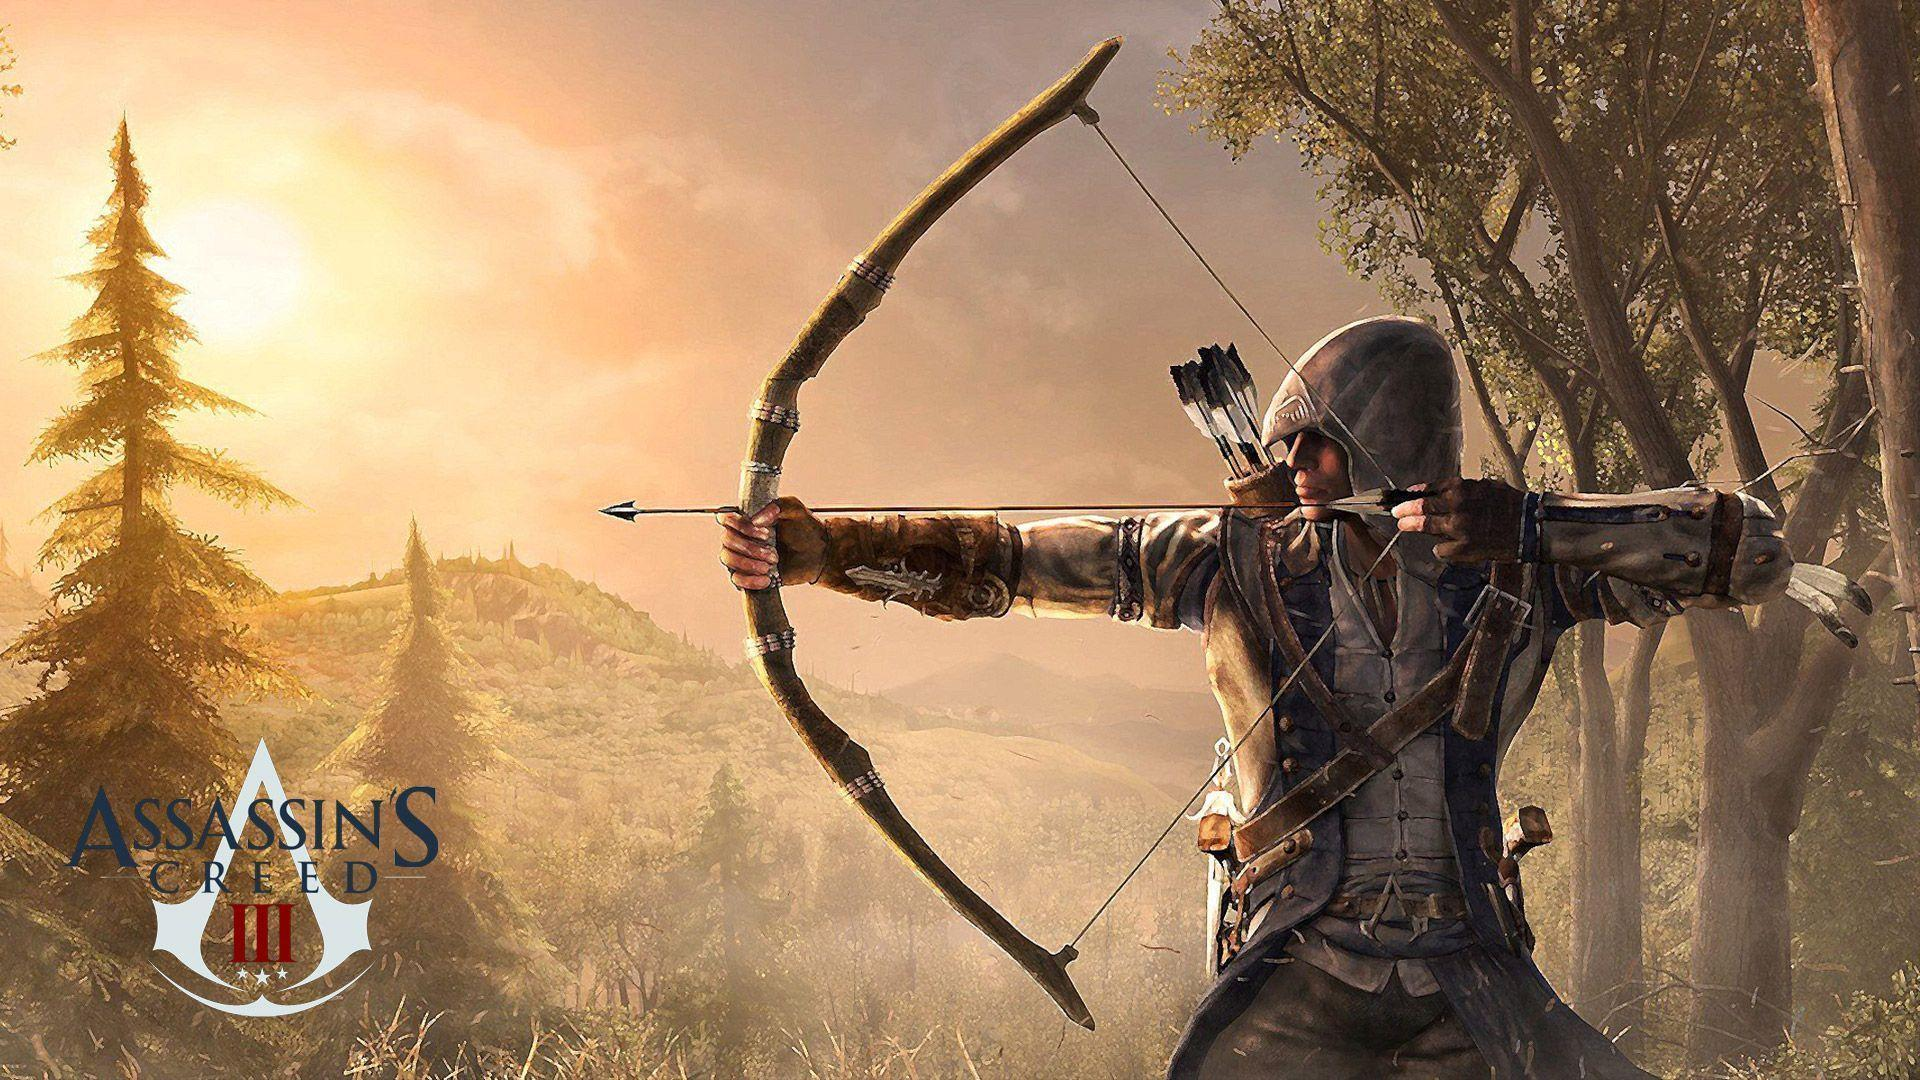 Assassins Creed 3 Wallpapers 1920x1080